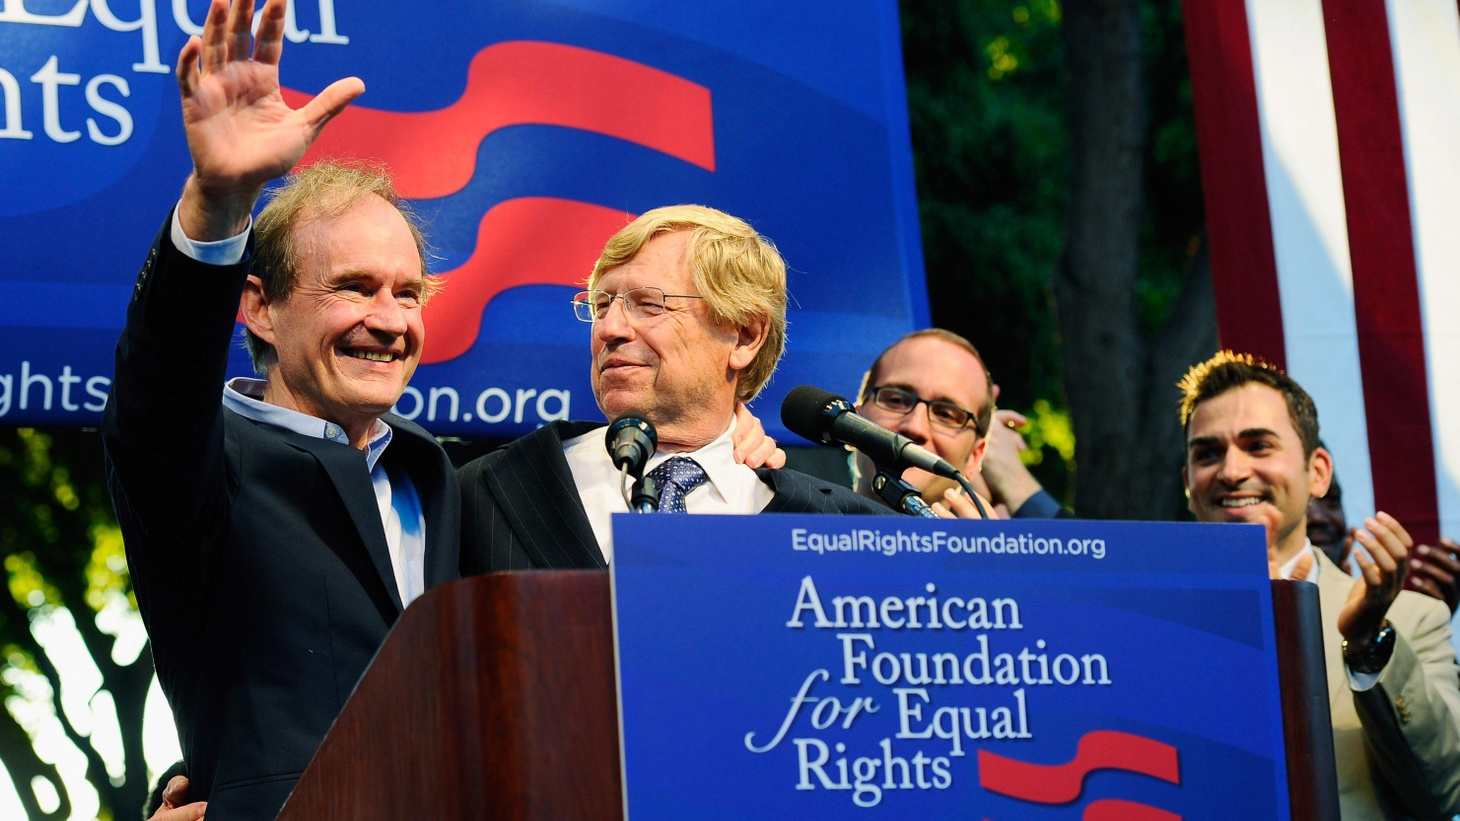 A federal judge has overturned California's ban on same-sex marriage. Another federal judge threw out part of Arizona's tough immigration law. And voters in Missouri this week said no to a federal requirement to buy health insurance. We talk about law, politics and states' rights, and the evolution of public opinion on same-sex marriage. Also, the US charges 14 linked to a Somali terror group.